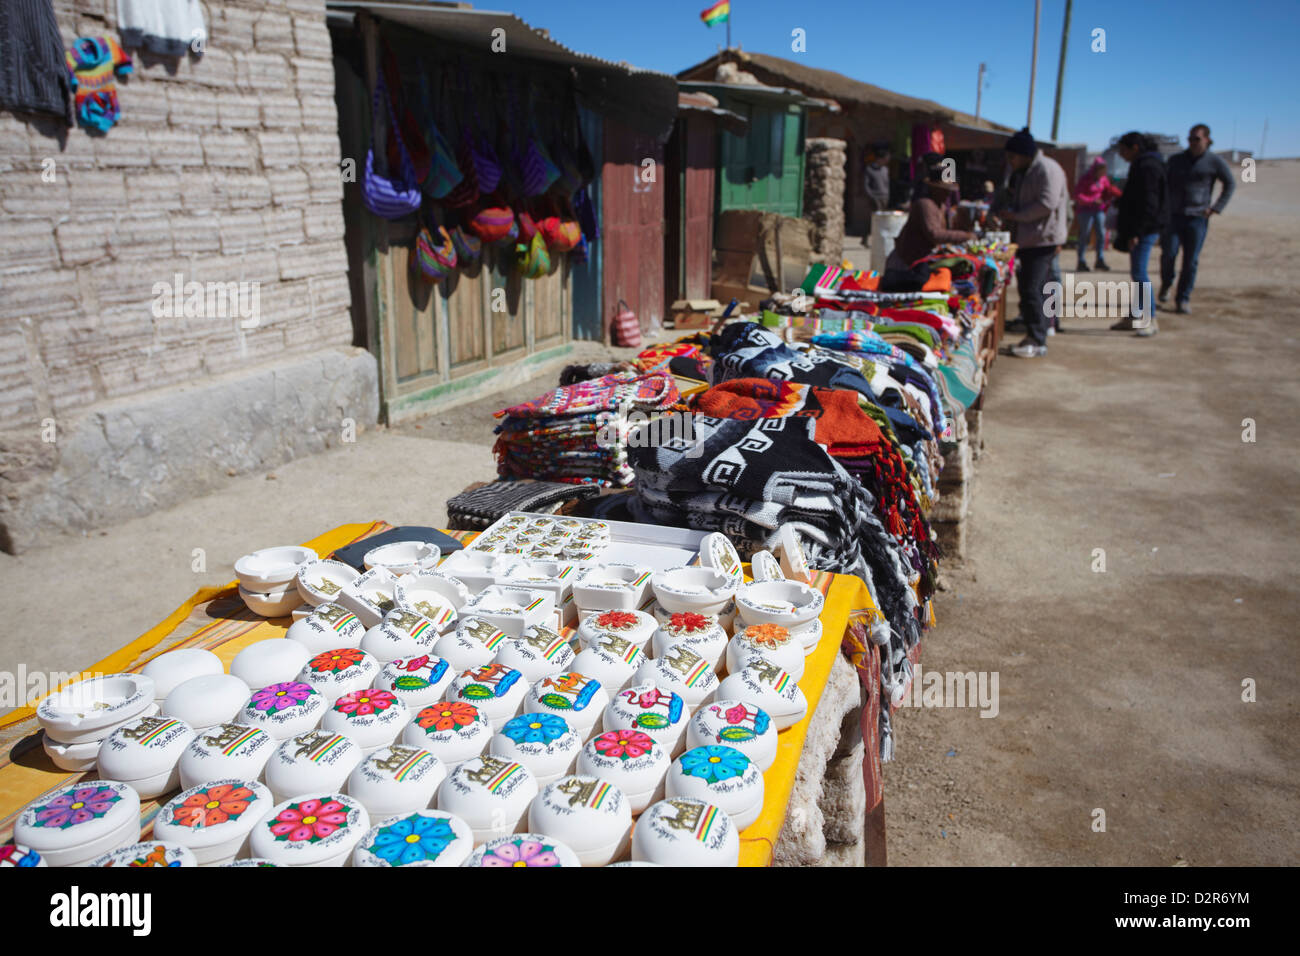 Souvenirs at market, Uyuni, Potosi Department, Bolivia, South America - Stock Image